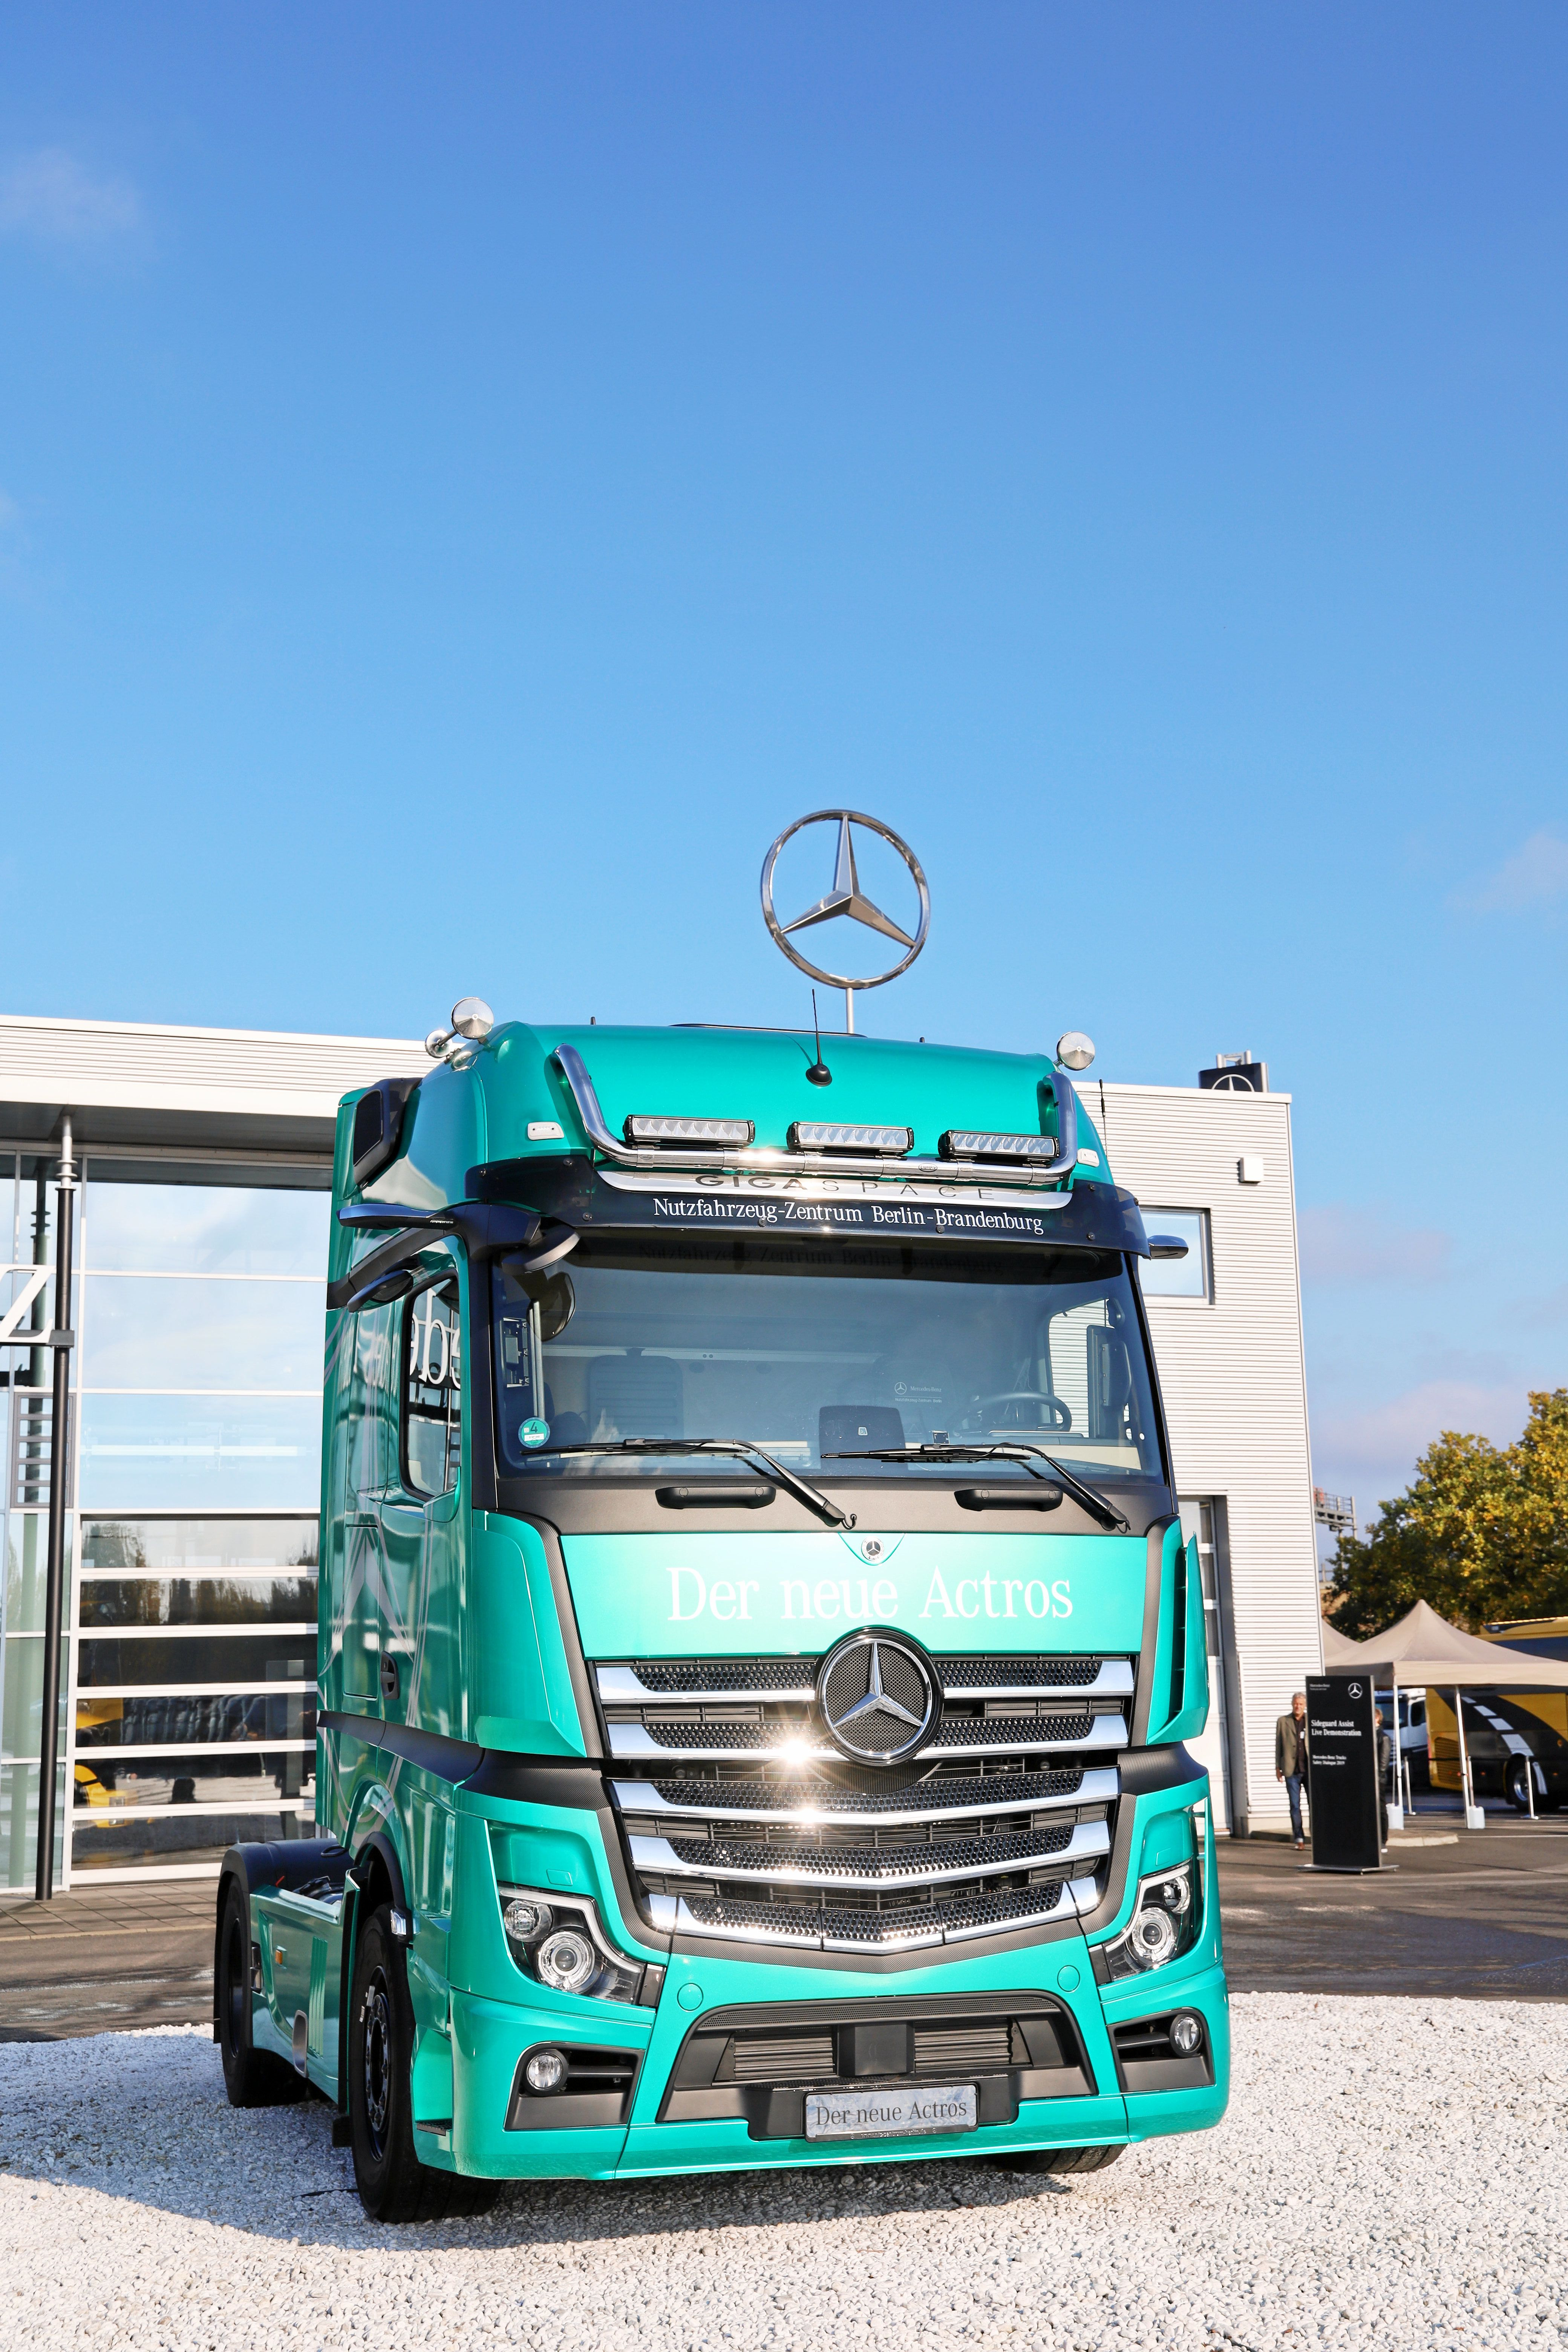 Mercedes-Benz Actros - Truck of the Year 2020 - AT.no